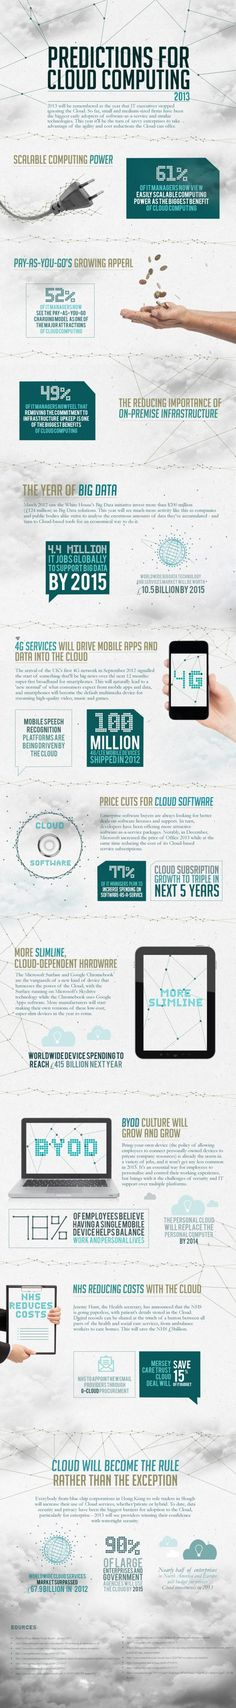 Cloud Computing Predictions for 2013